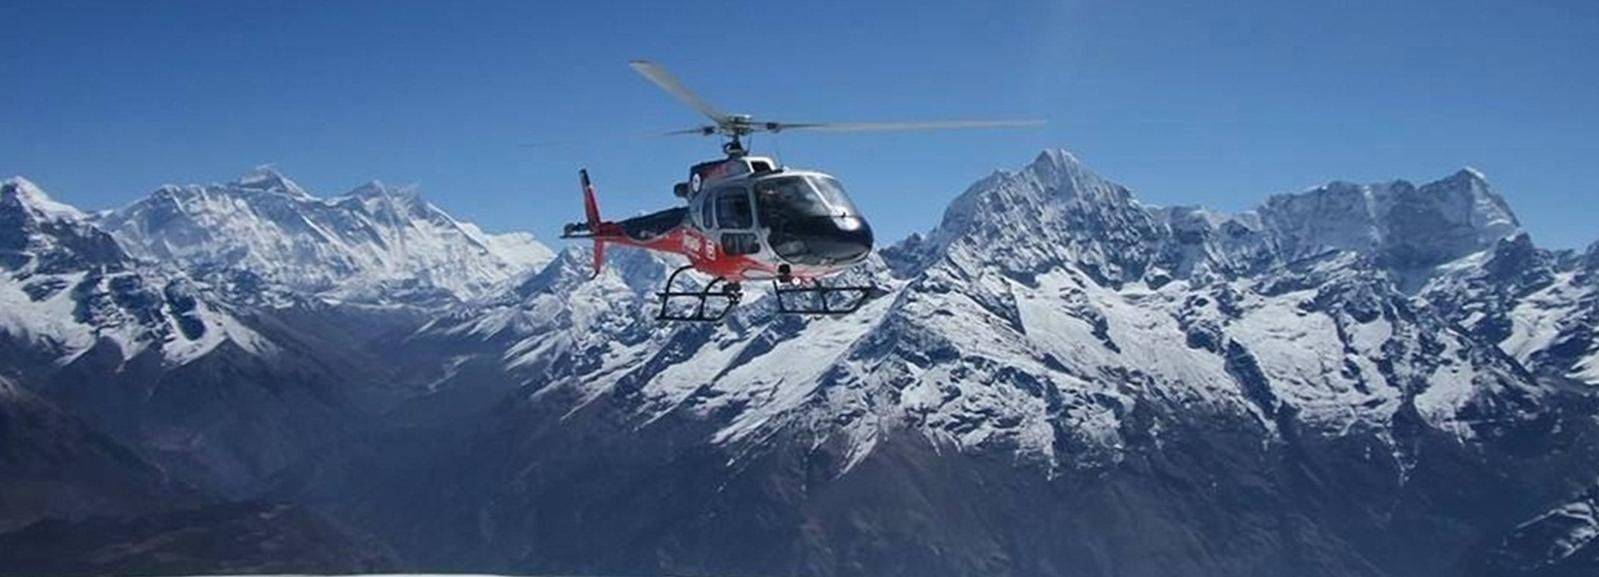 Everest: Half-Day Helicopter Tour